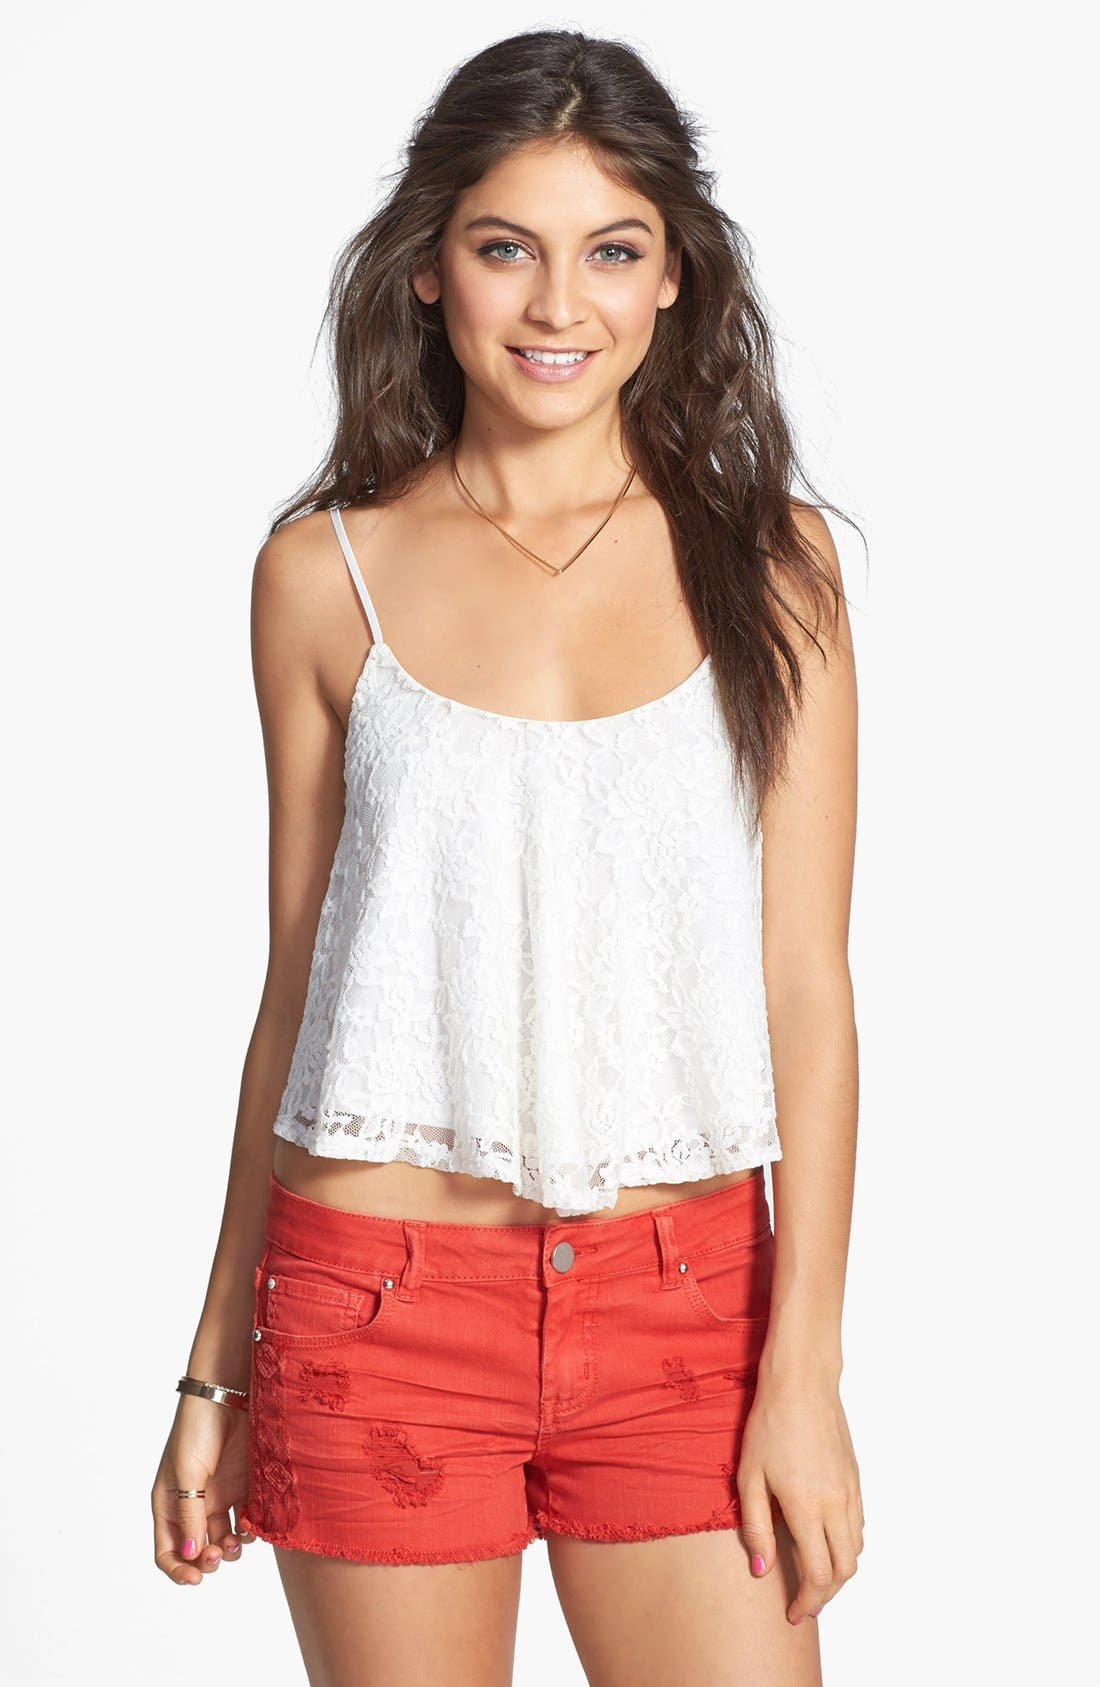 Alternate Image 1 Selected - Socialite Floral Lace Camisole (Juniors)